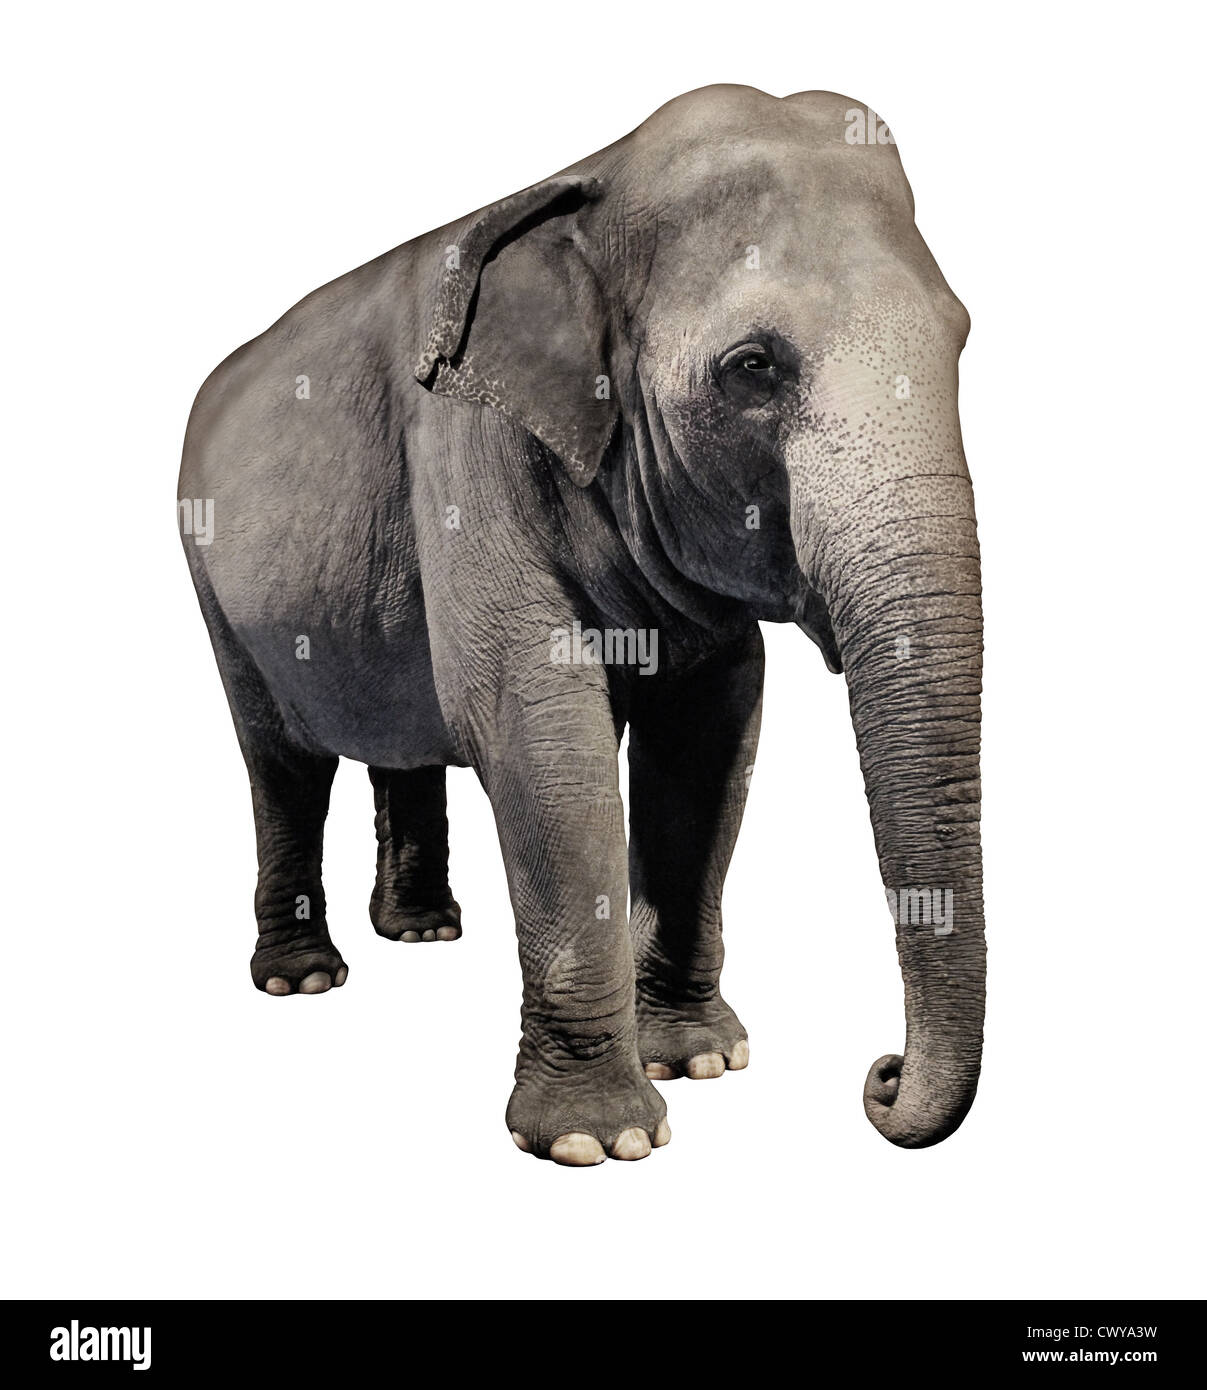 Elephant Animal Isolated On A White Background In A Three Quarter